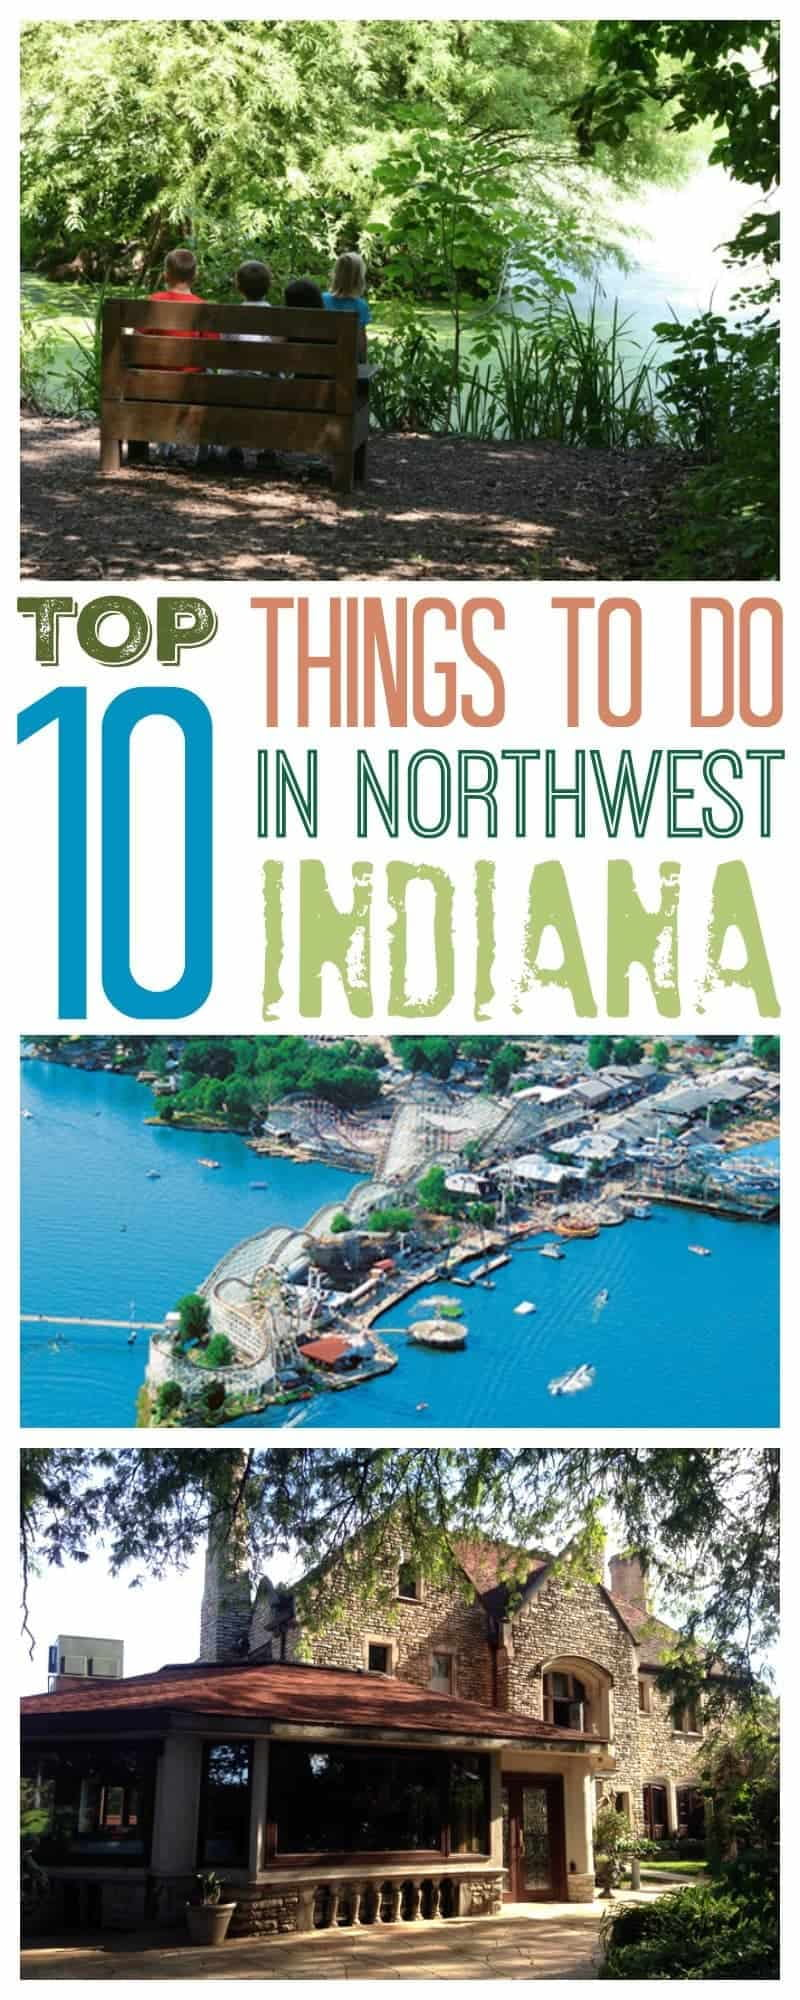 Top 10 things to do in Northwest Indiana